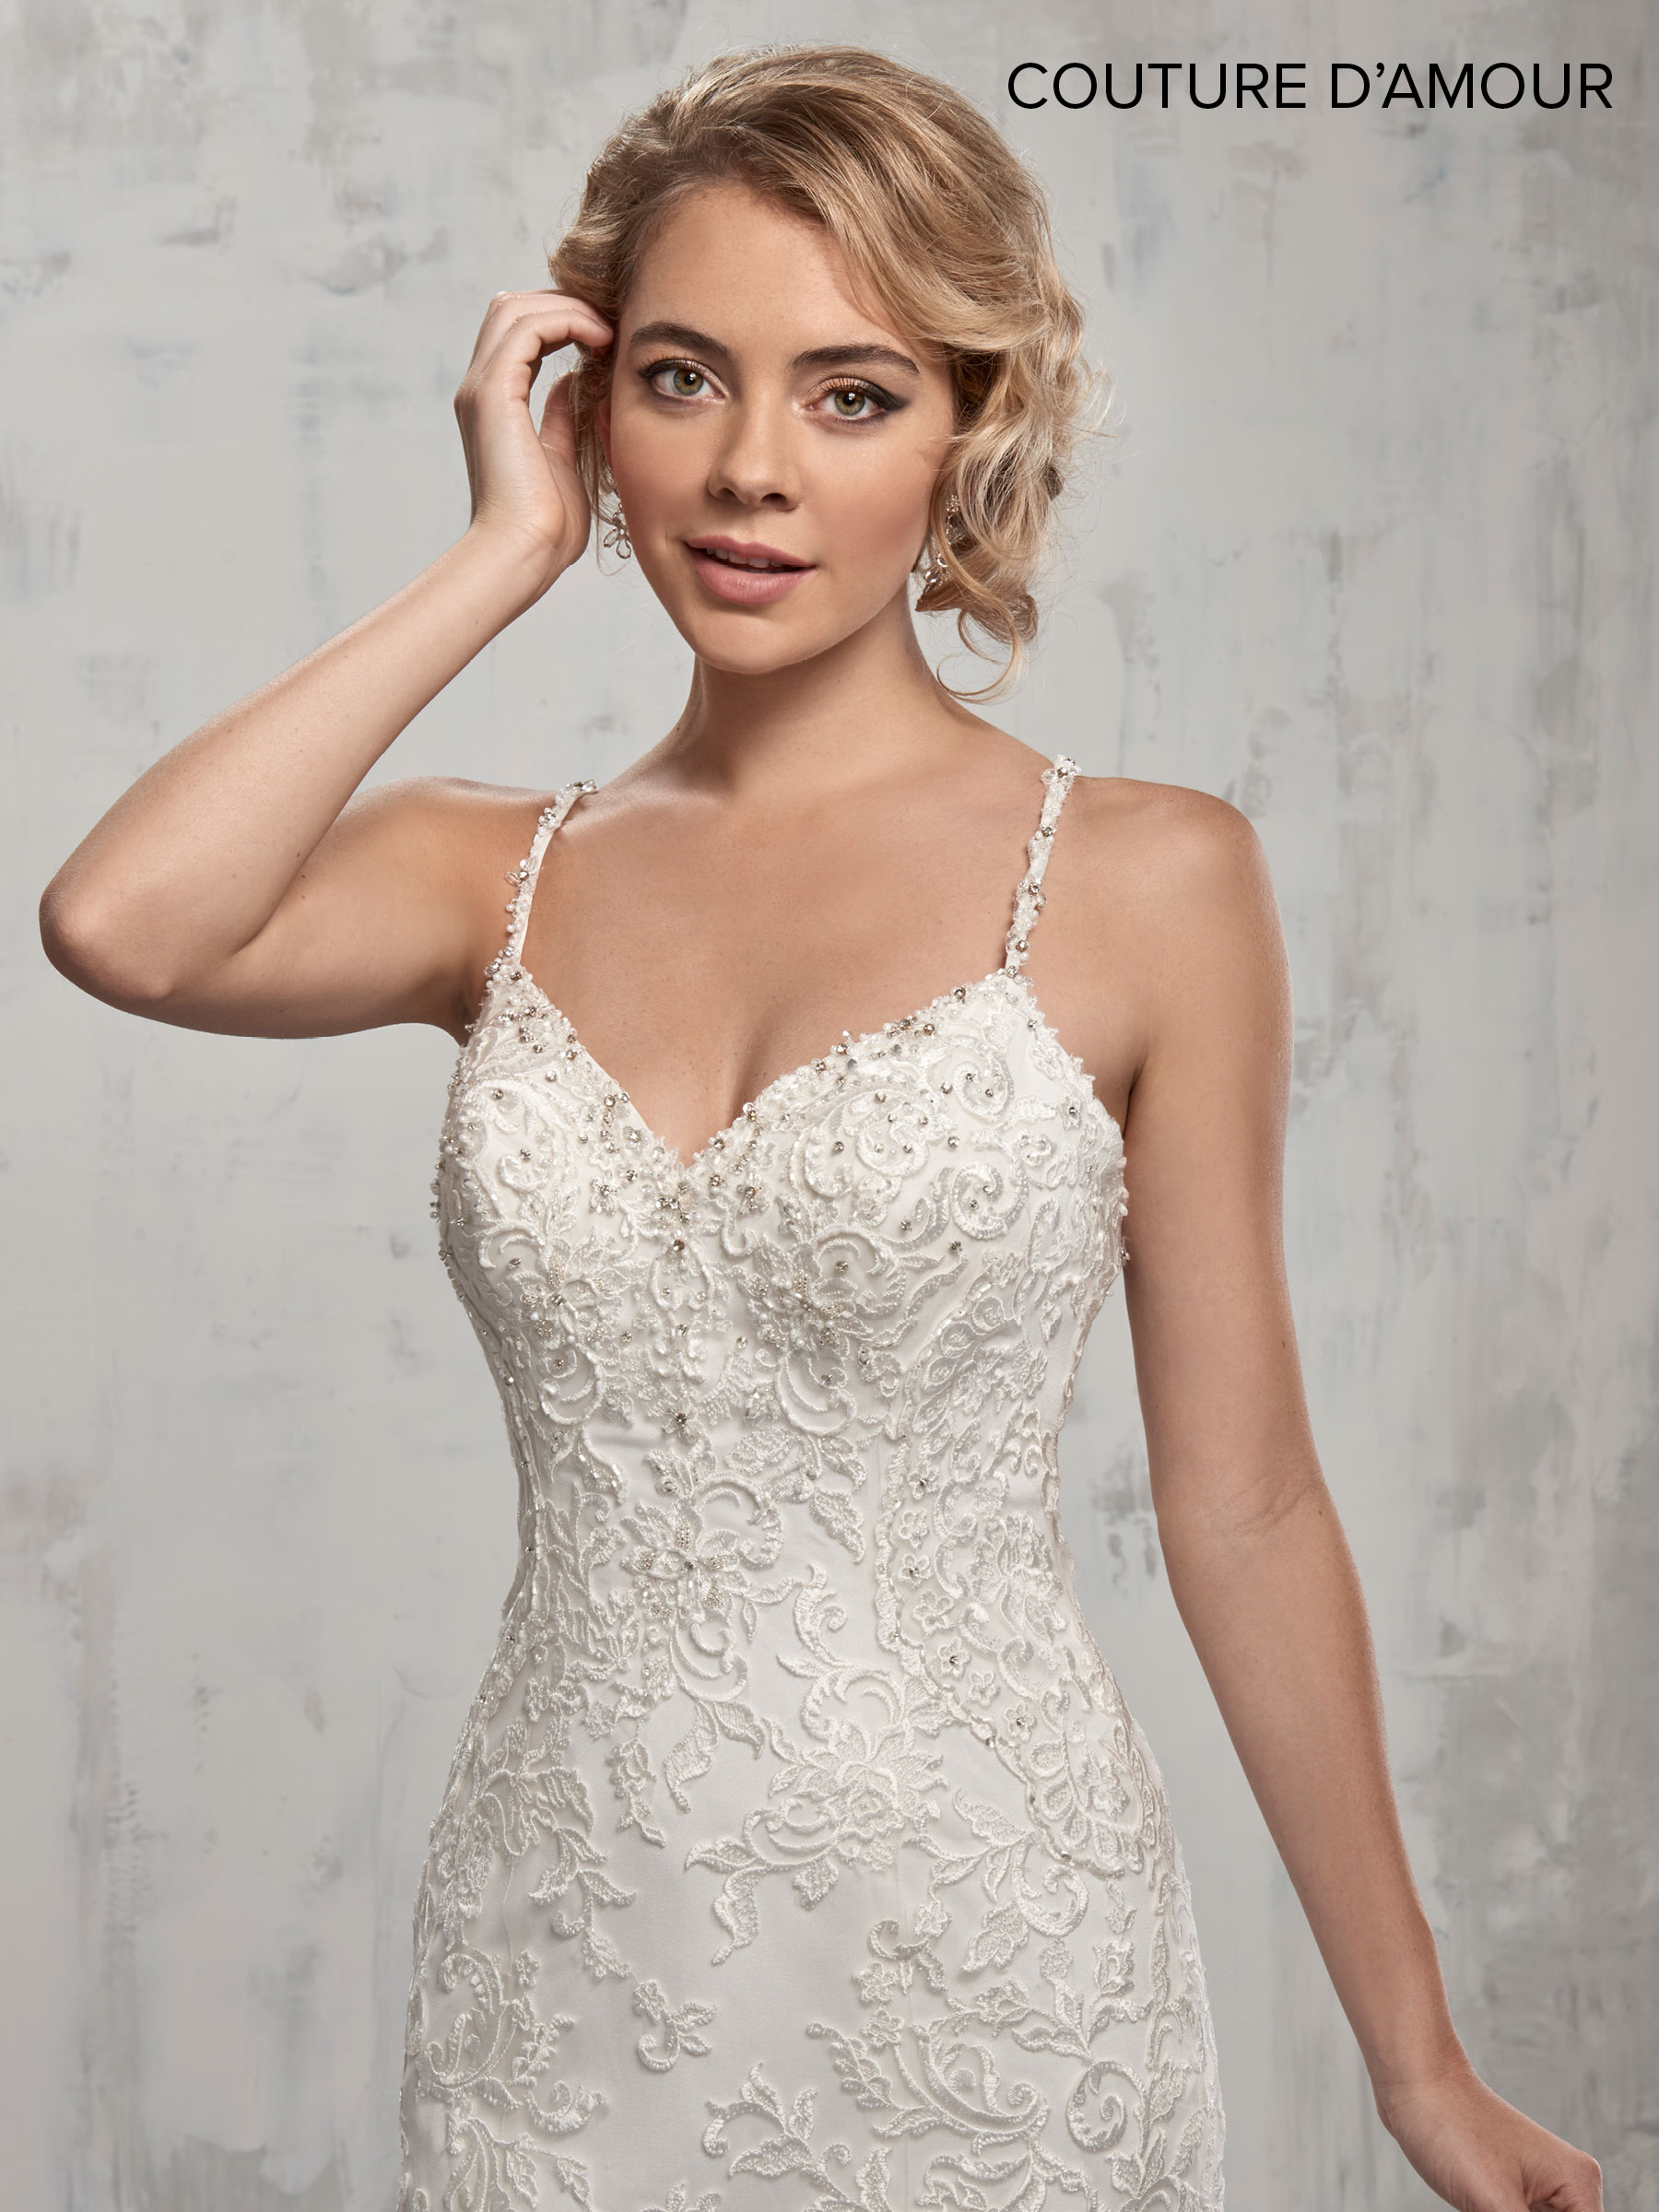 Couture Damour Bridal Dresses | Couture d'Amour | Style - MB4005